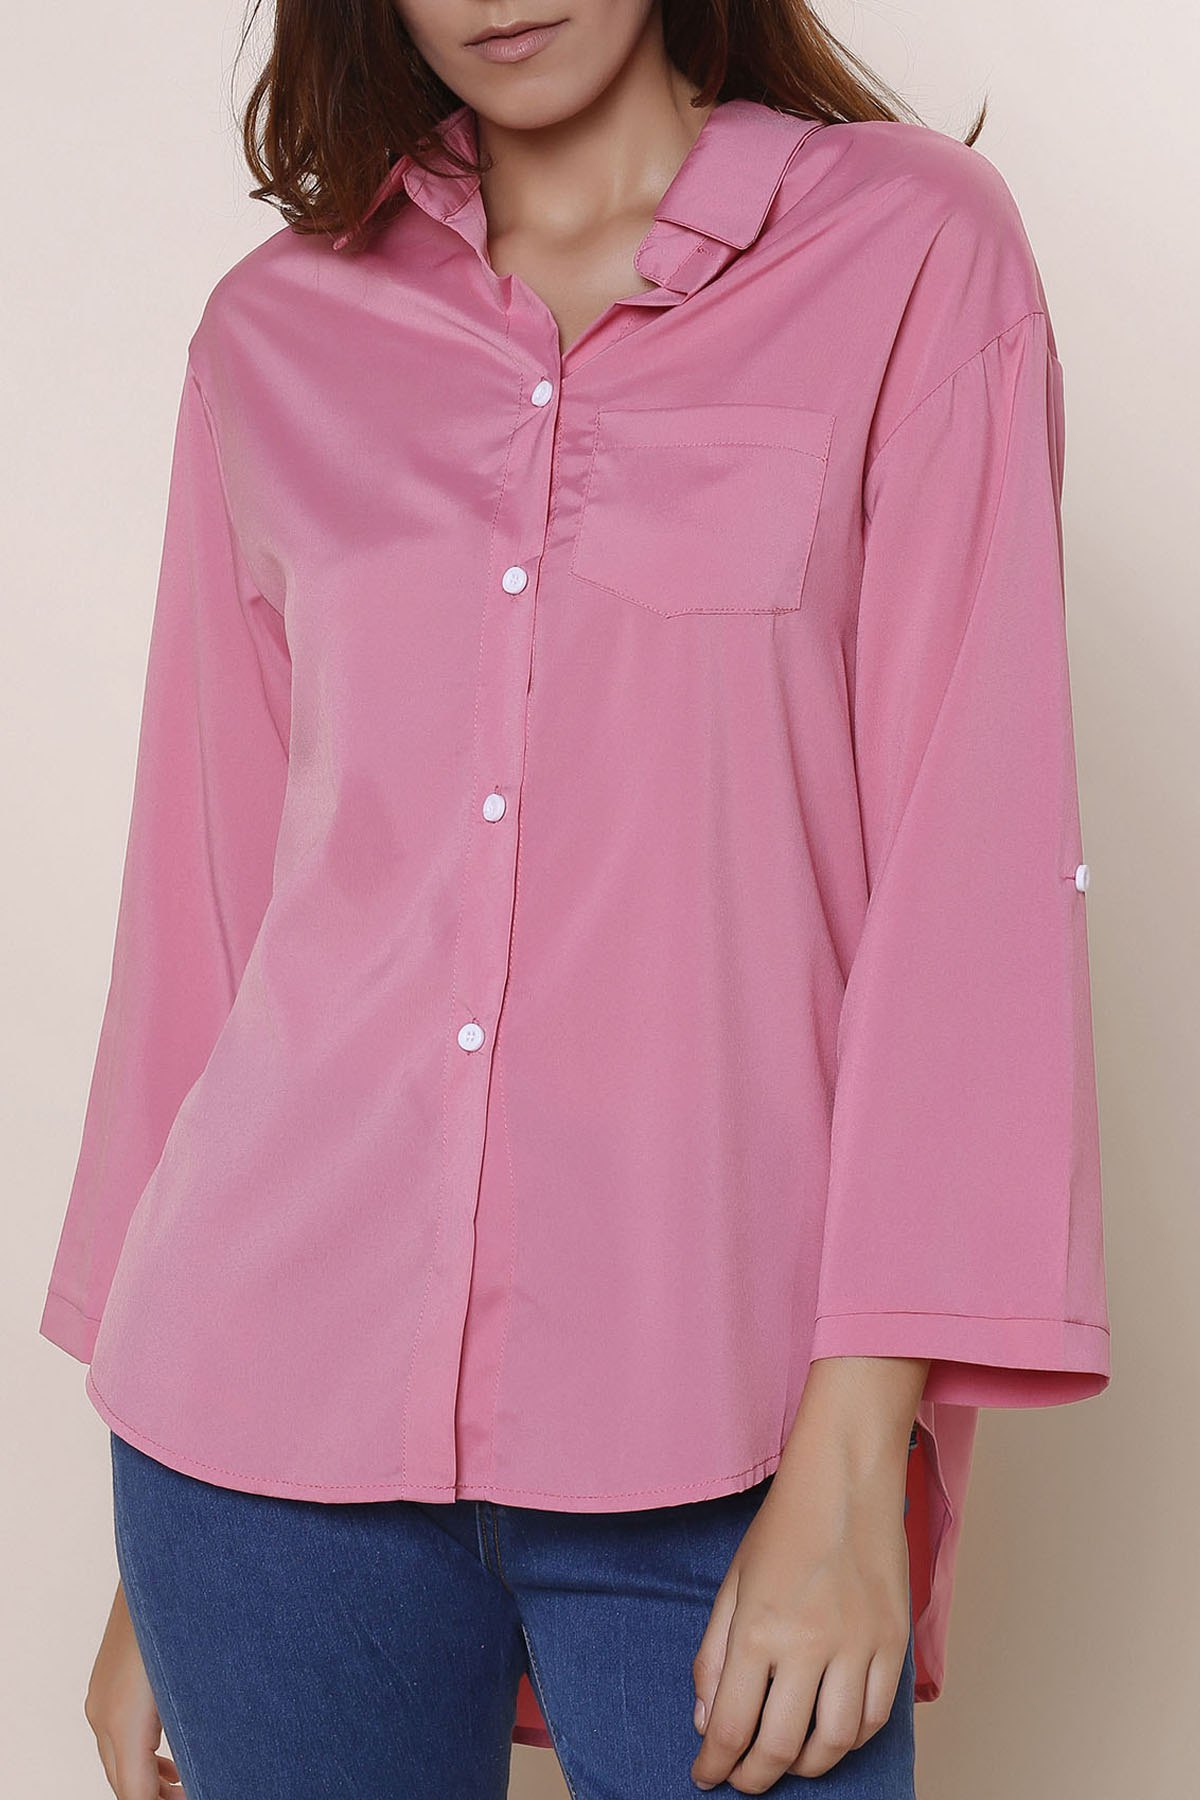 OL Style Long Sleeve  High-Low Solid Color Hem Shirt For Women